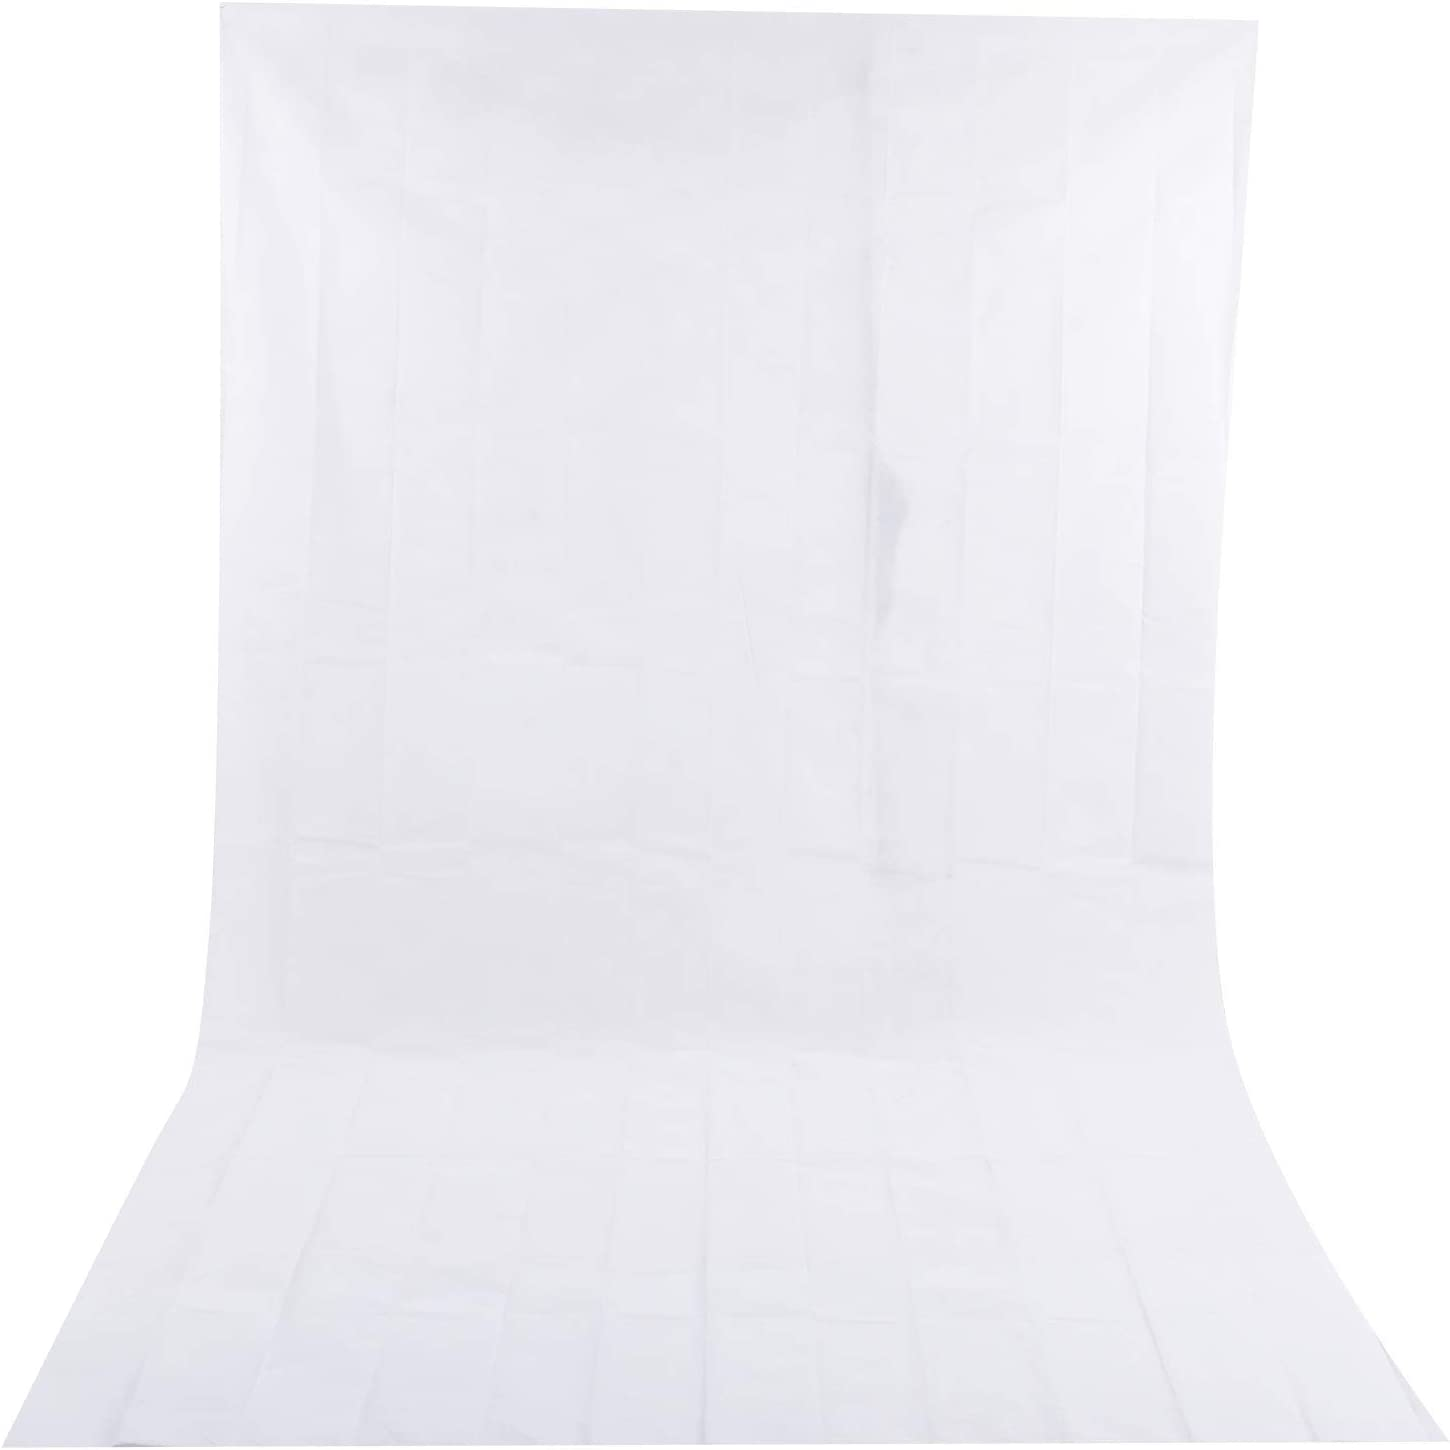 Teror 1 year warranty Cloth Photo Quality inspection Background Photography Double‑Sided Backdrop